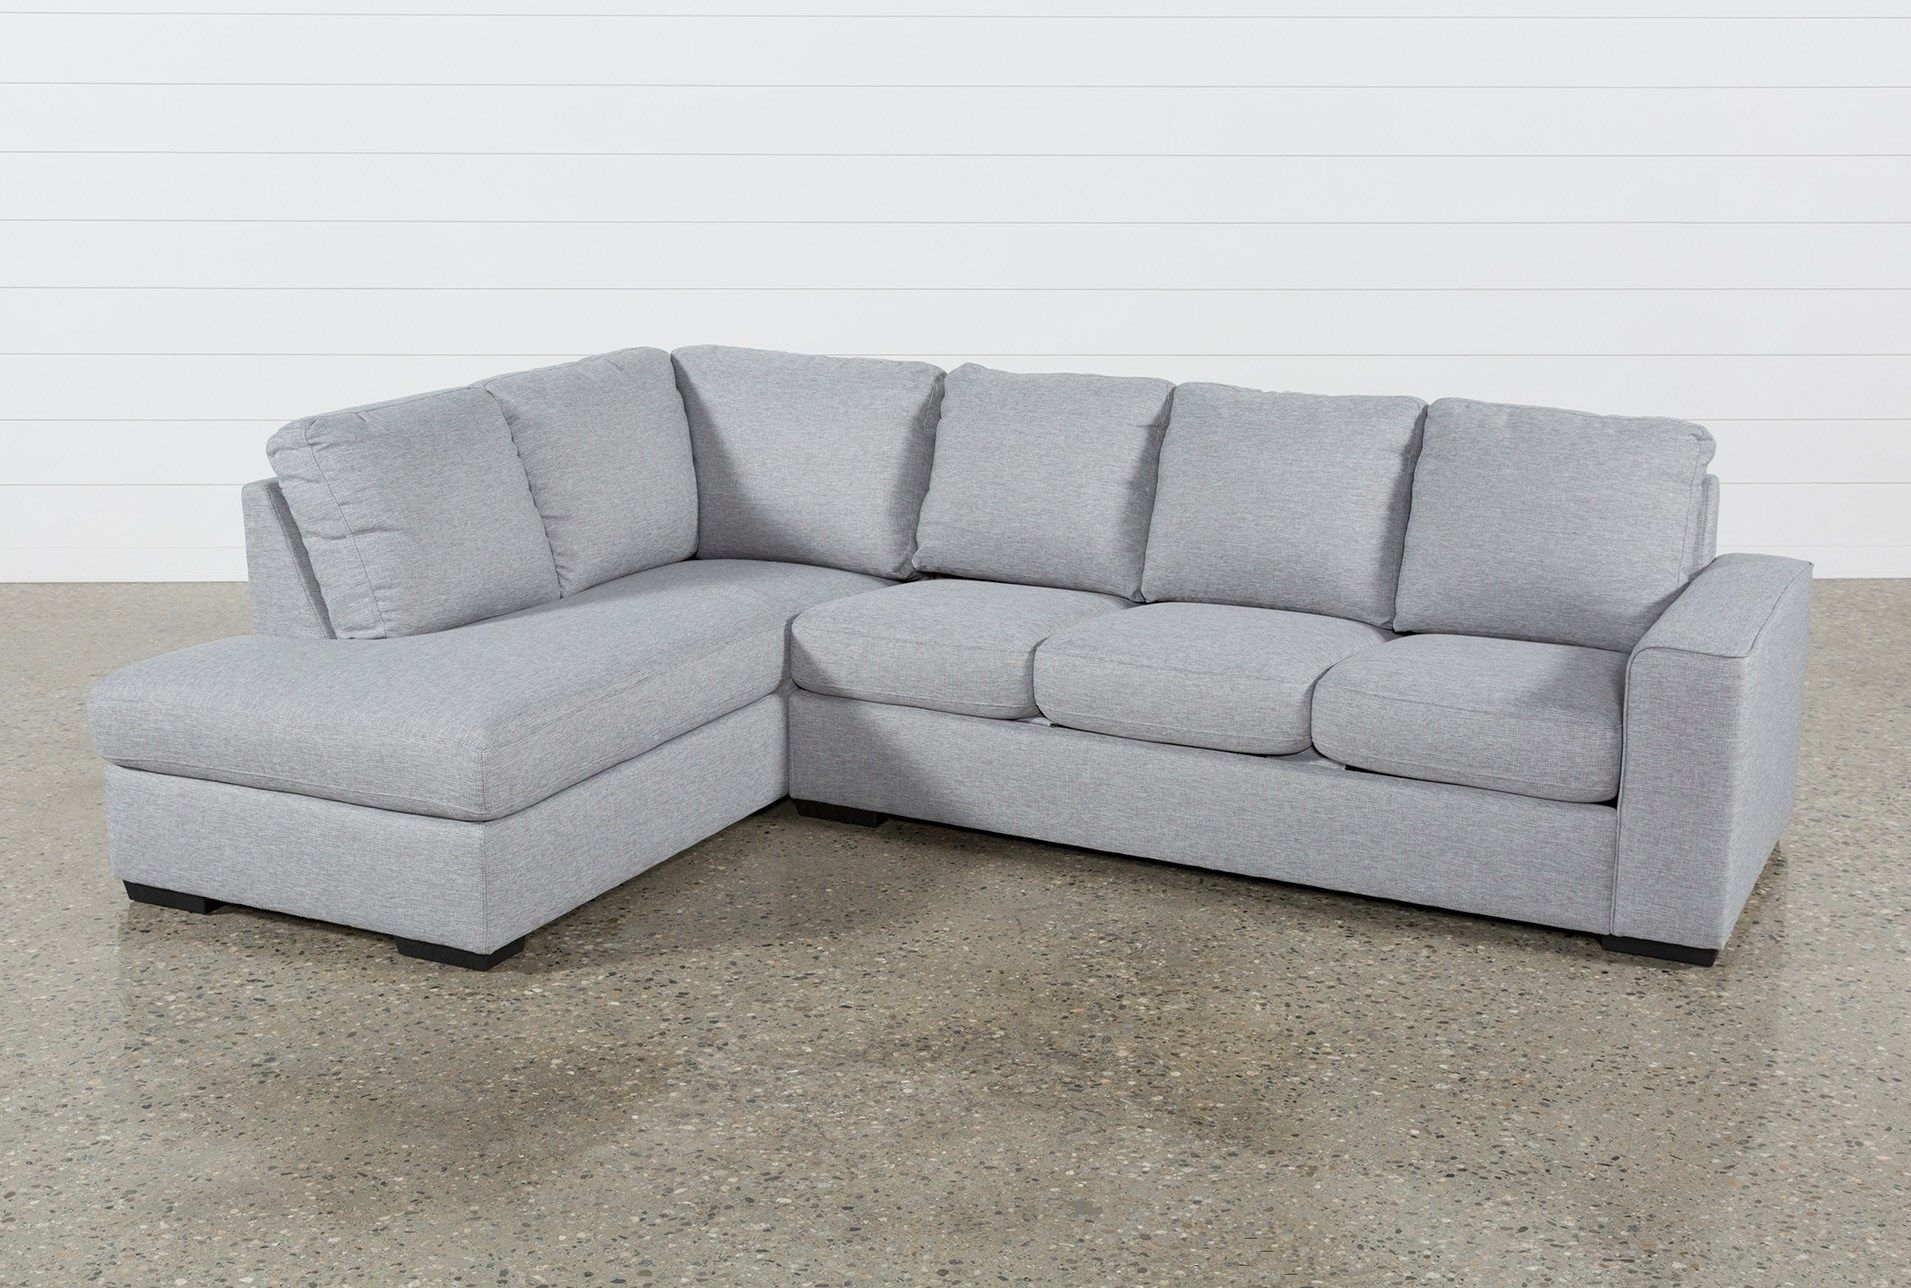 Lucy Grey 2 Piece Sectional W/laf Chaise | Tx House | Pinterest Pertaining To Lucy Dark Grey 2 Piece Sleeper Sectionals With Laf Chaise (View 5 of 25)